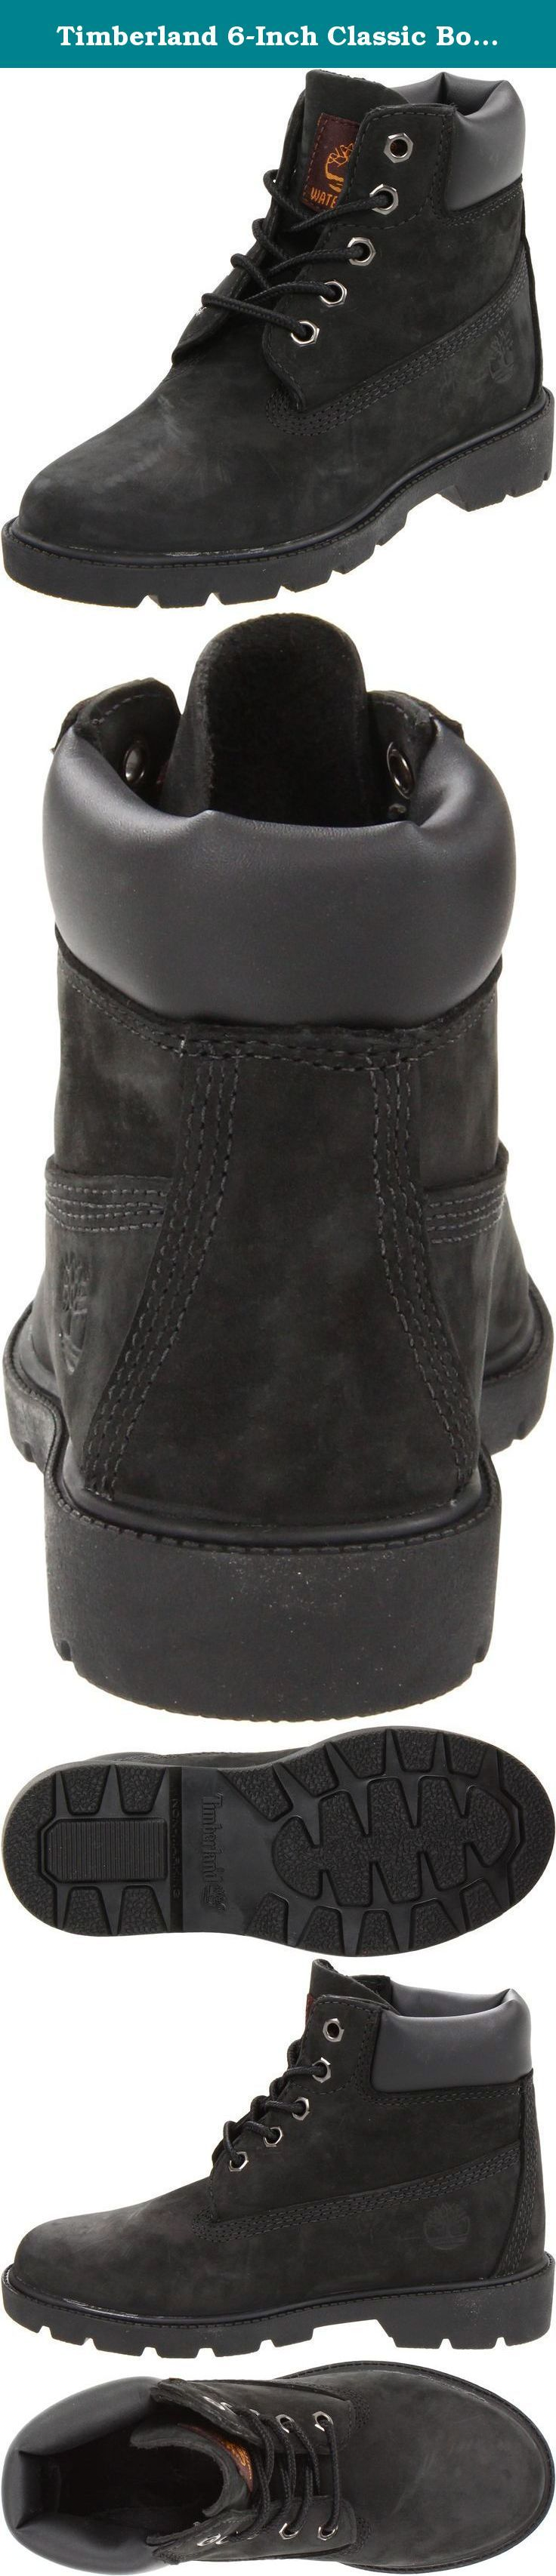 Timberland 6-Inch Classic Boot (Toddler/Little Kid/Big Kid). This is the original, the boot that helped start it all, but for kids. The Timberland 6 Classic Boot Kid's is crafted in premium, full-grain leather and constructed to be sturdy, supportive and waterproof. This kid's boot is rugged and dependable. Because this Timberland boot is 100% waterproof you don't need to worry about puddles, rain or mud. A textile lining and insole with extra padding at the tongue and collar are for…